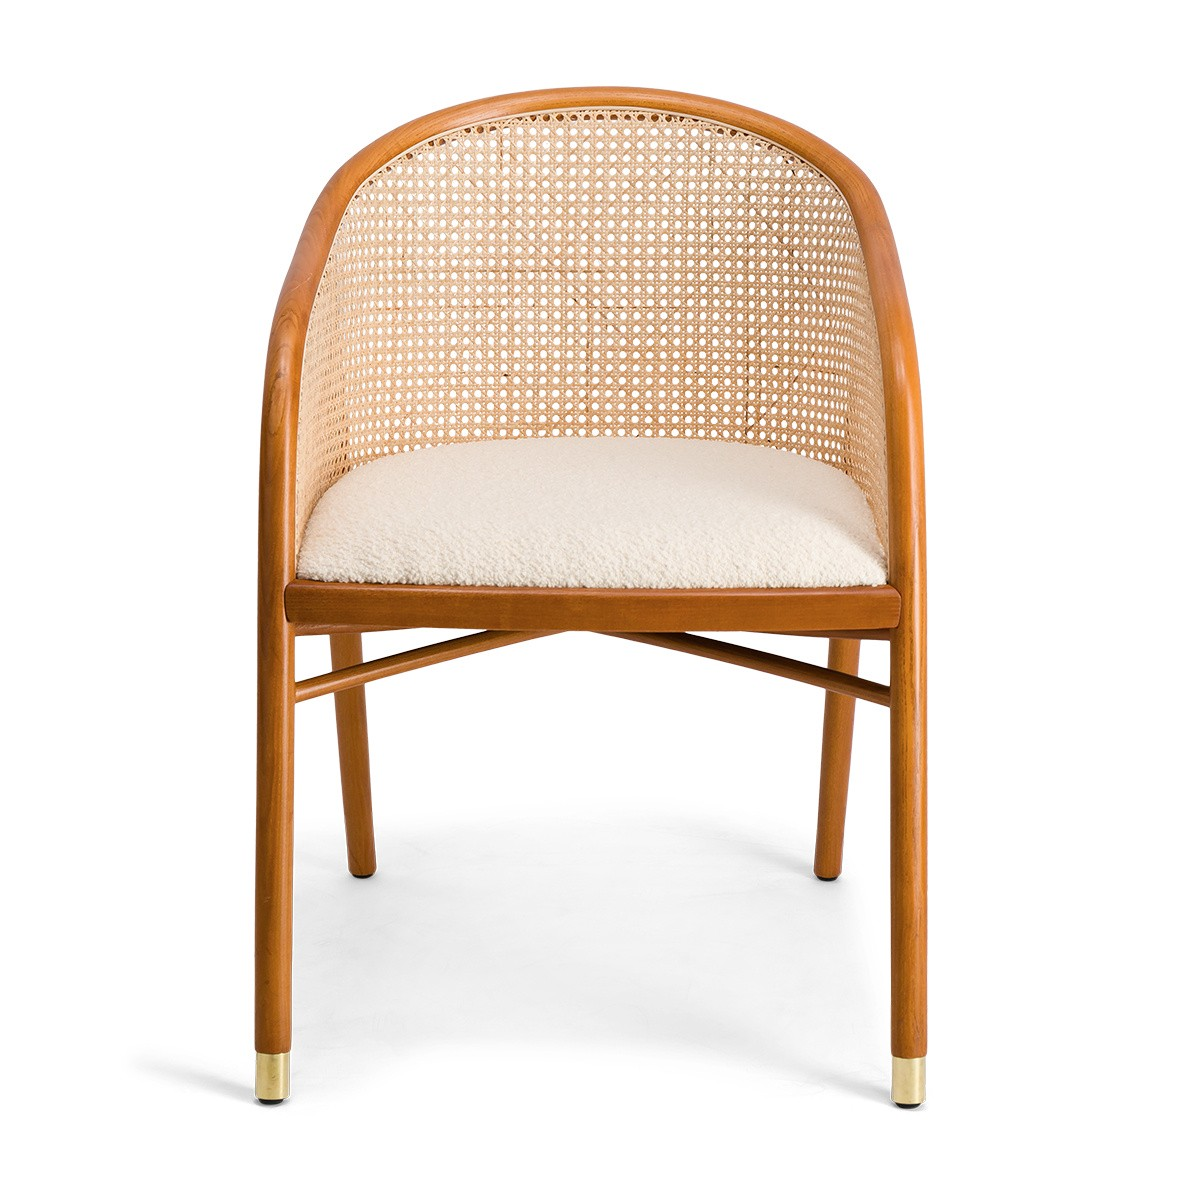 Cavallo Armchair, Cream White Curly Wool with Cherrywood Lacquered Frame